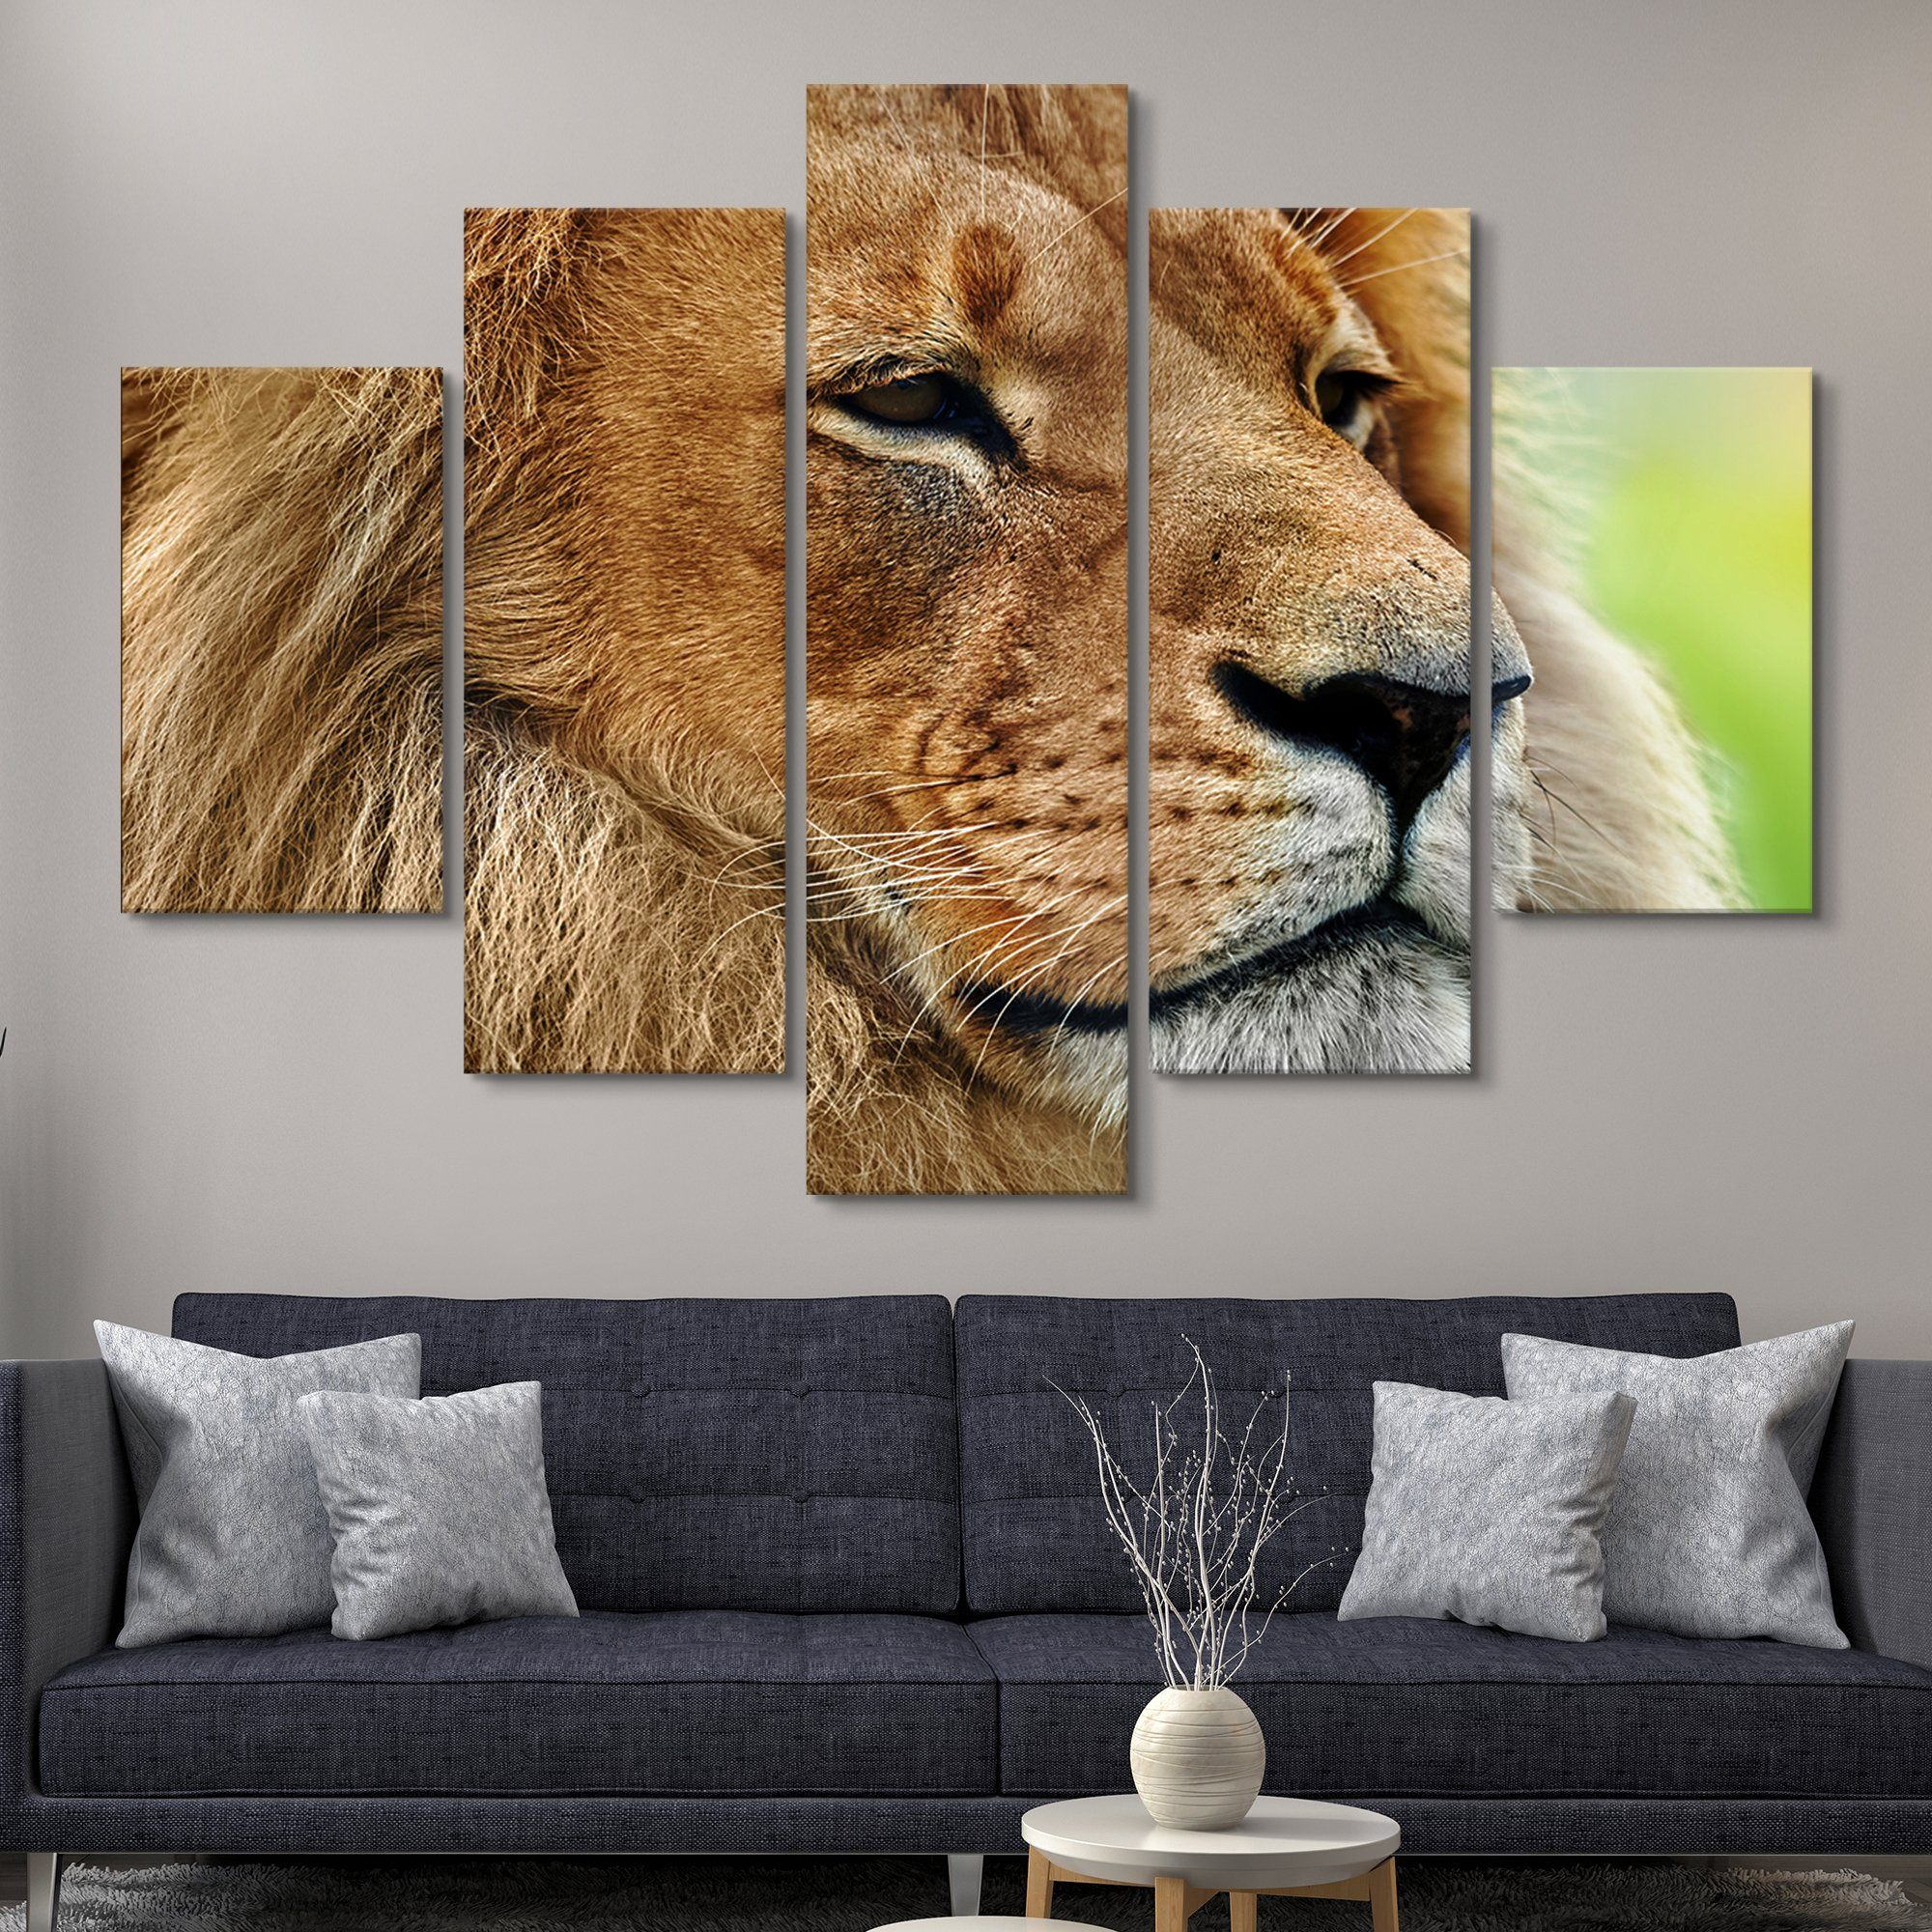 5 piece Like a True King wall art